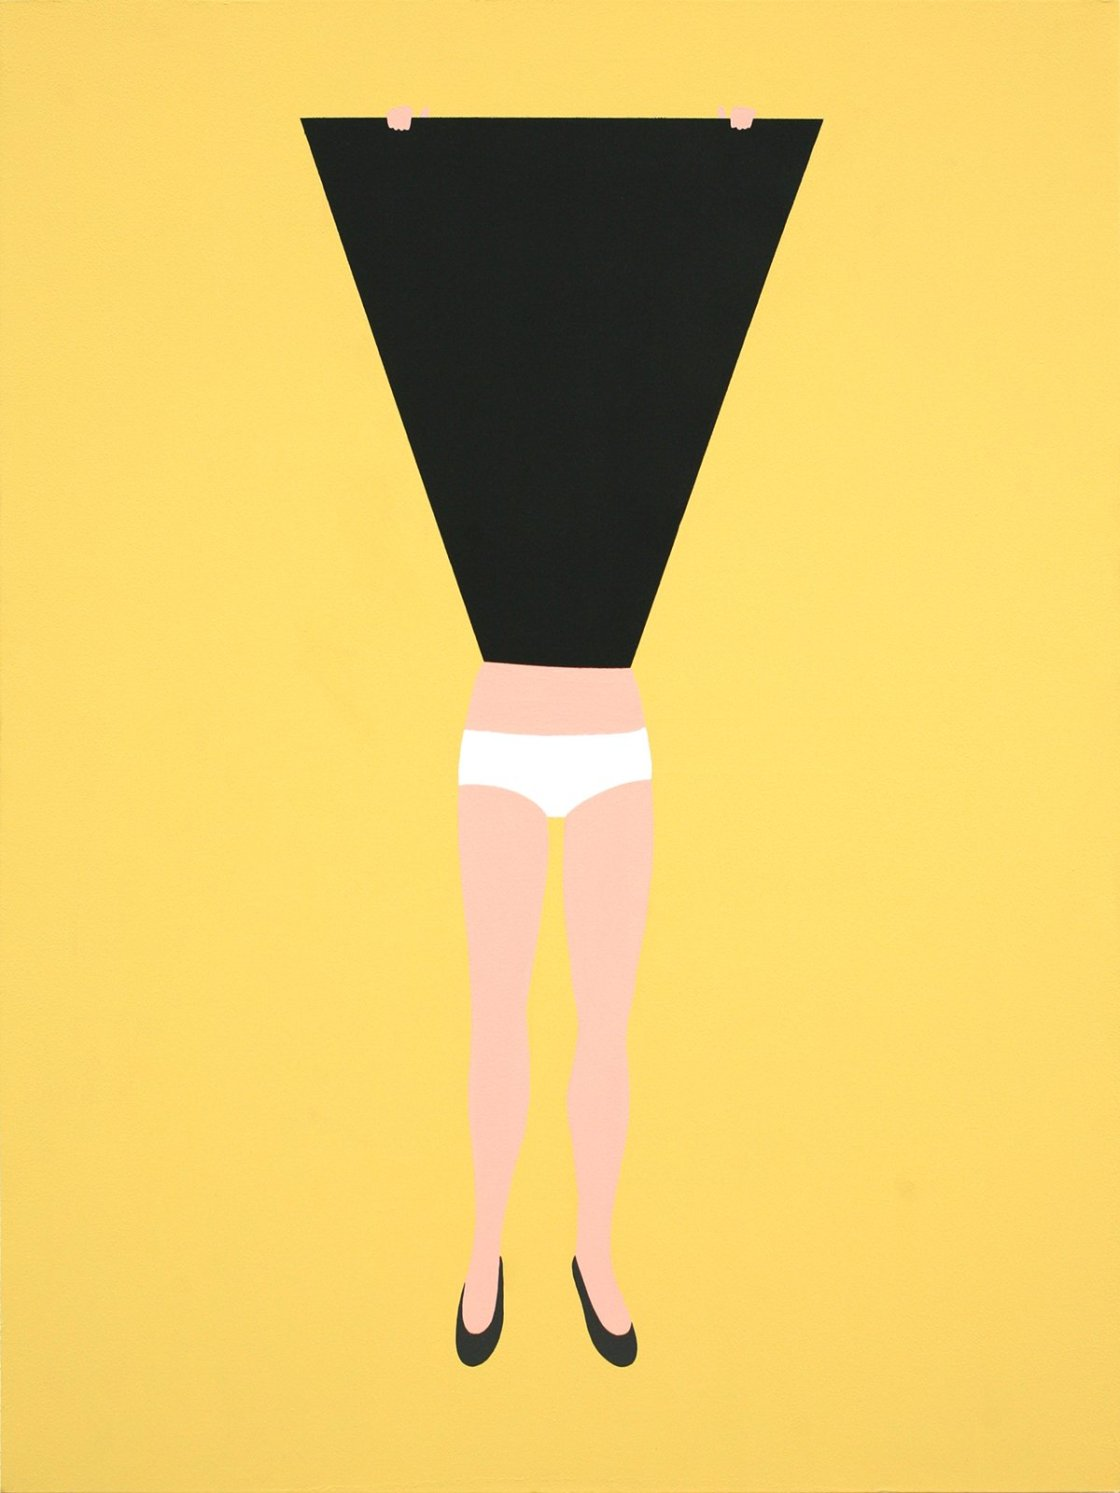 geoff_mcfetridge_paintings-designplayground_12